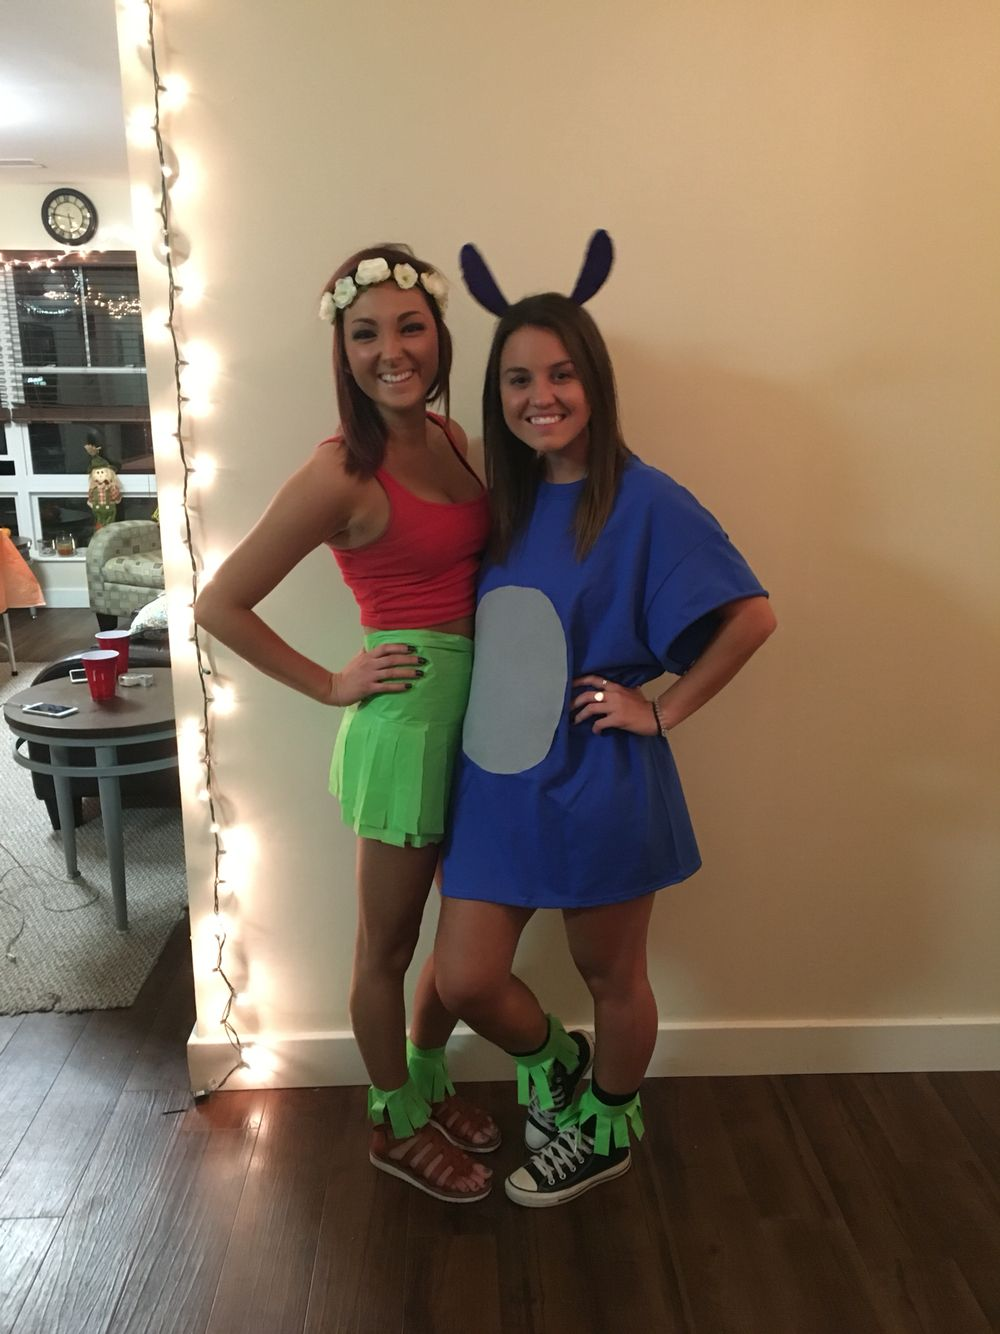 Diy Lilo And Stitch Costume Stitch Halloween Costume Lilo And Stitch Costume Stitch Costume